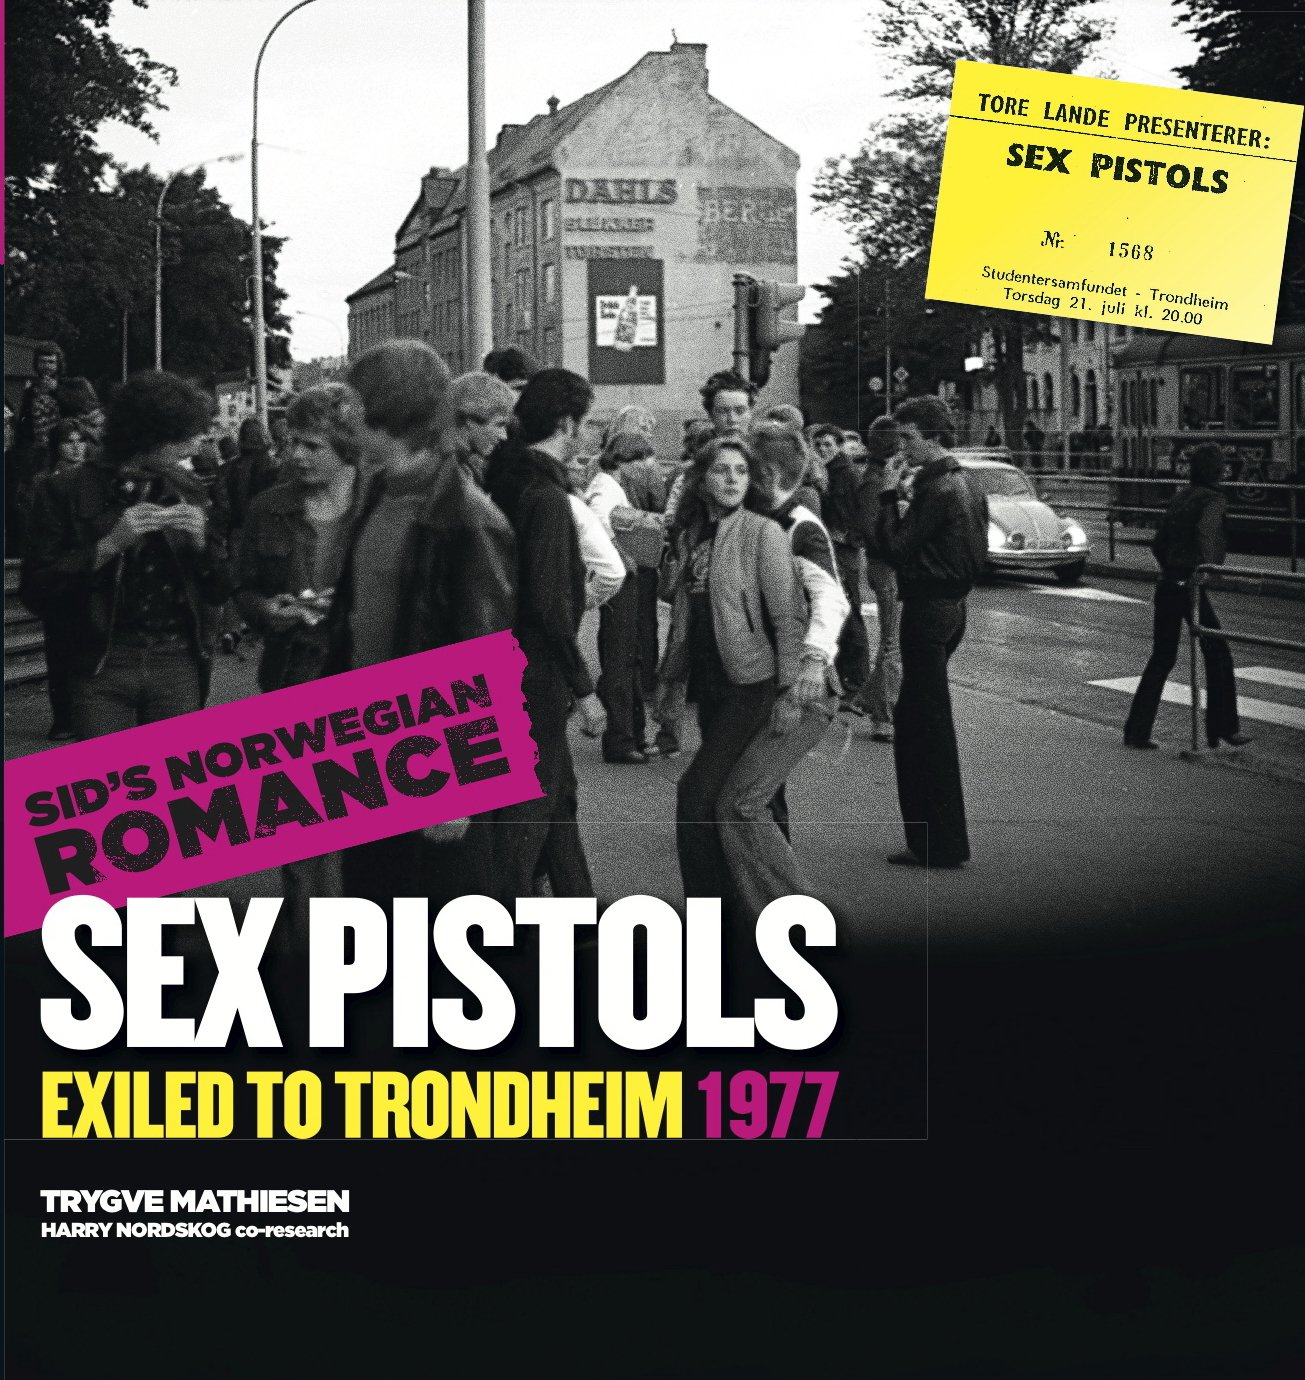 Sex Pistols Exiled to Trondheim 1977: Sid's Norwegian Romance